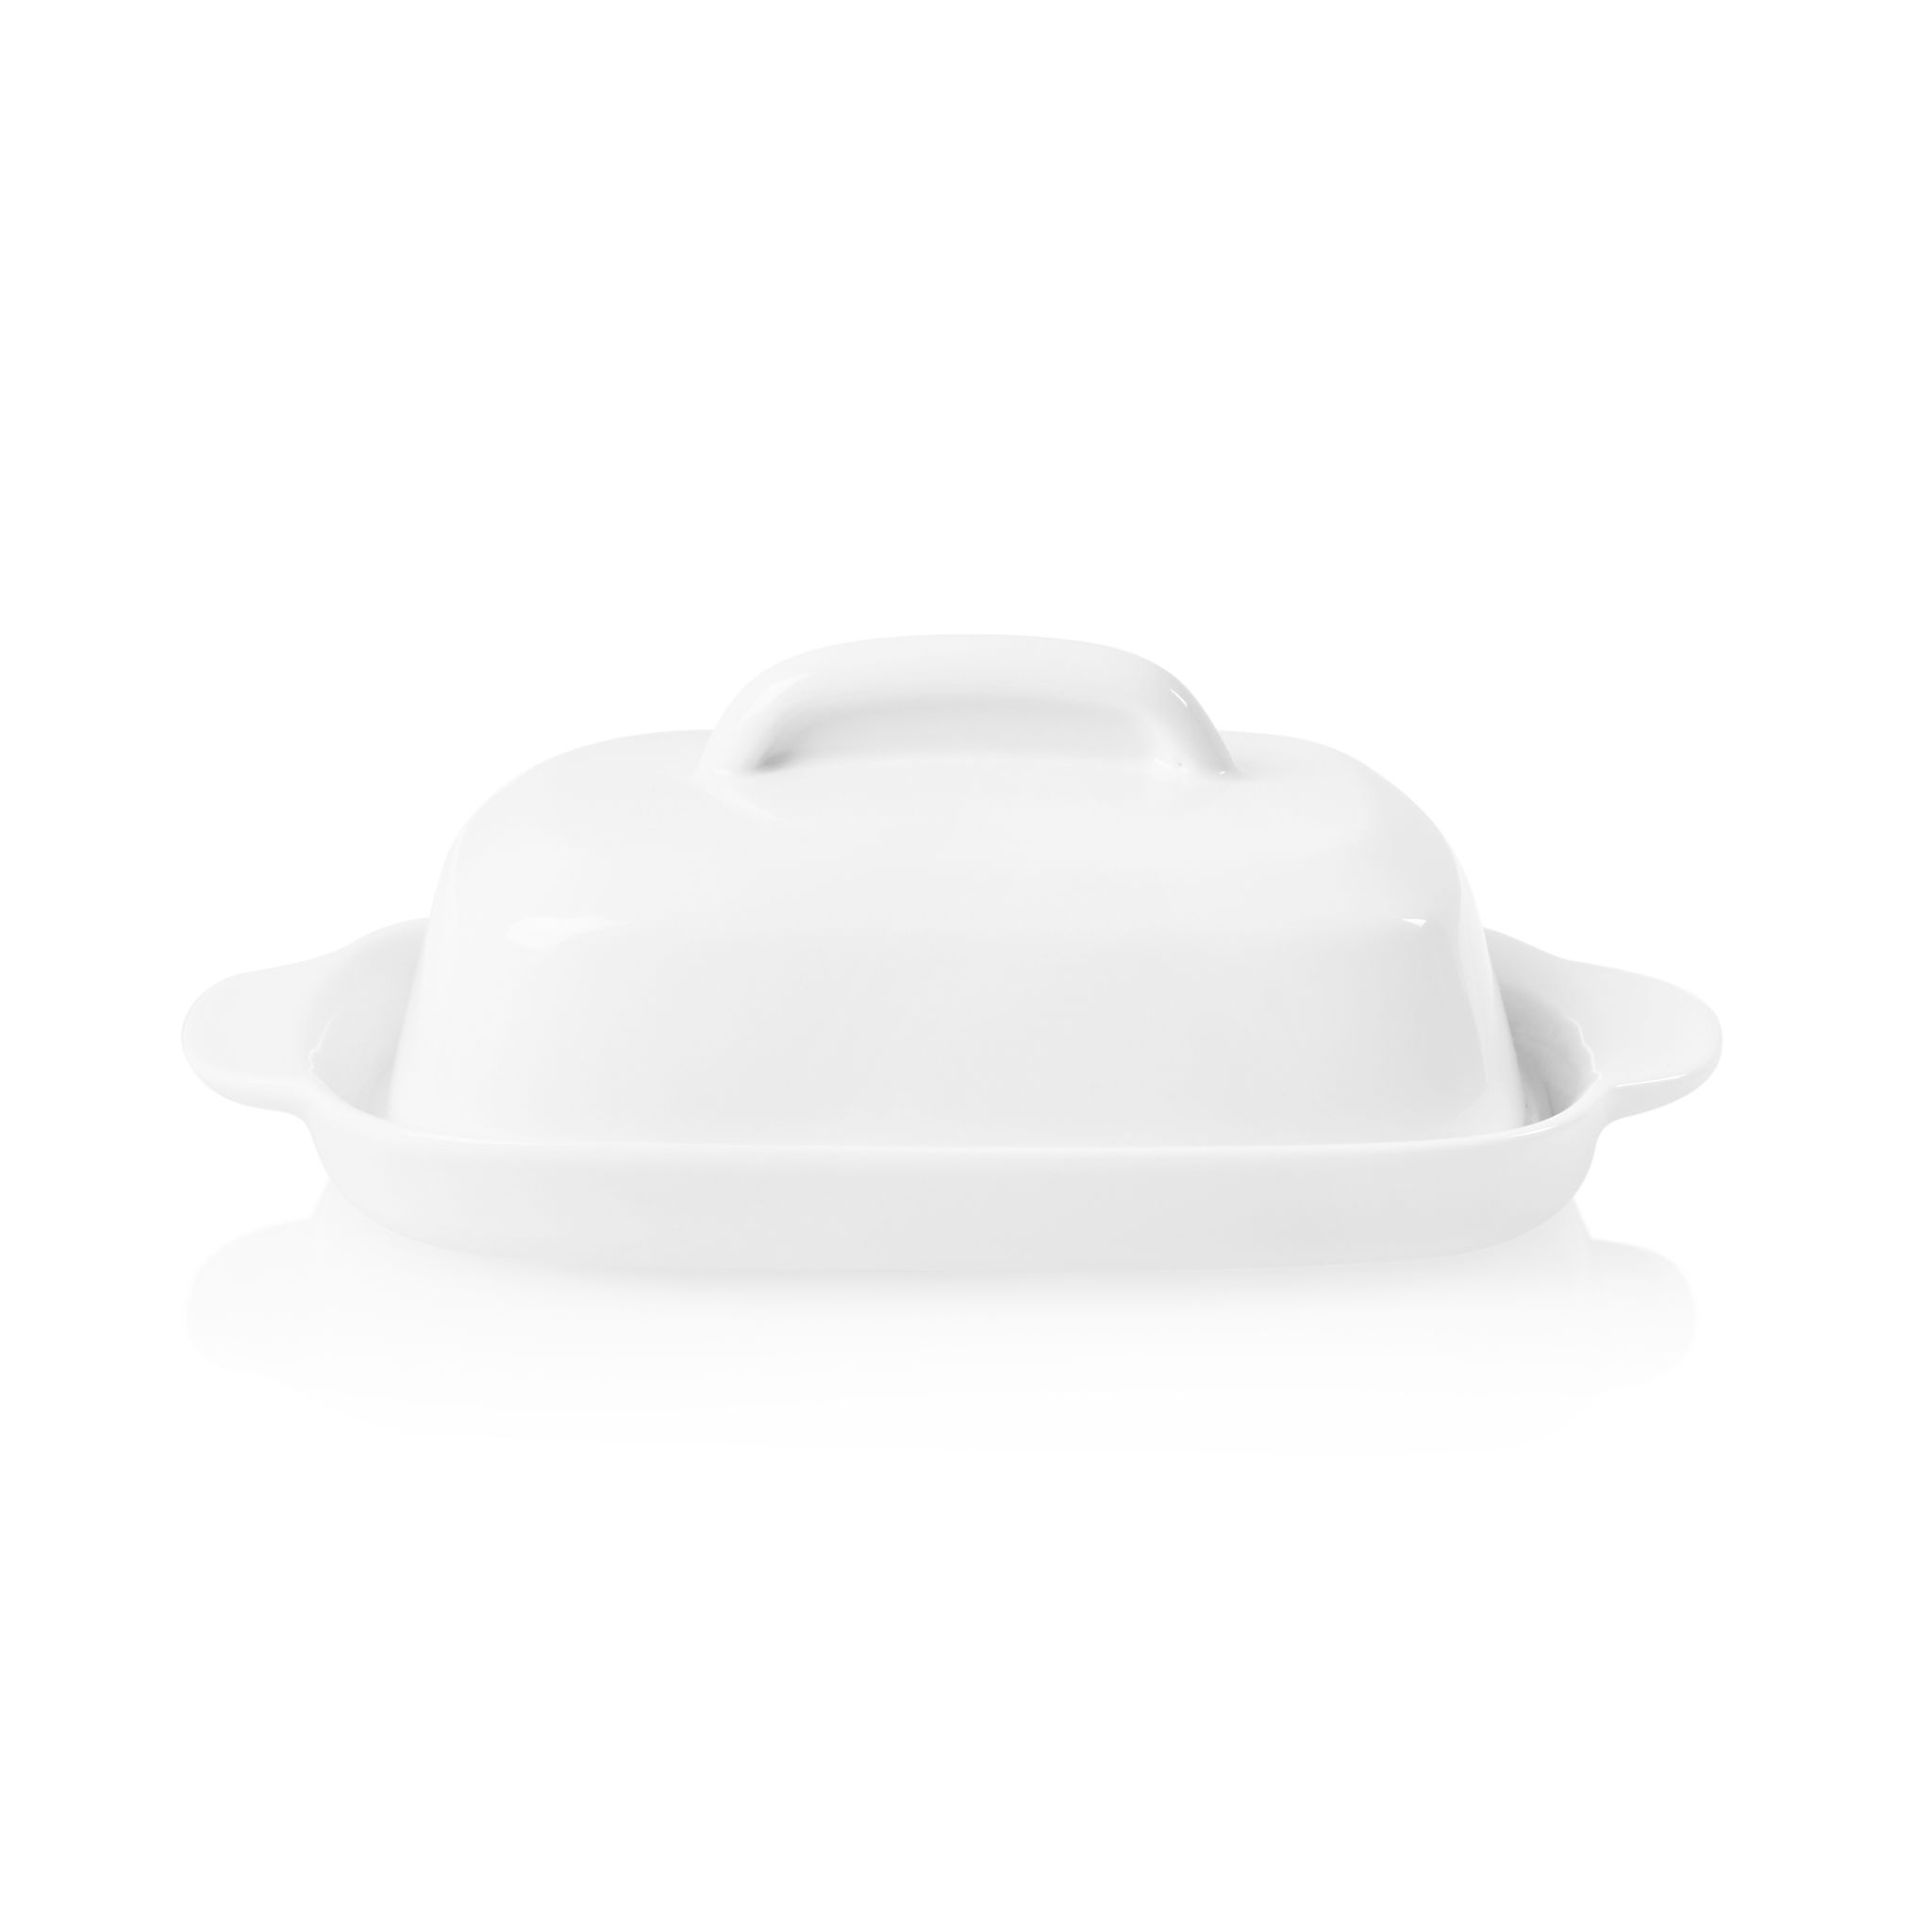 Corelle Winter Frost White Porcelain Butter Dish with Lid